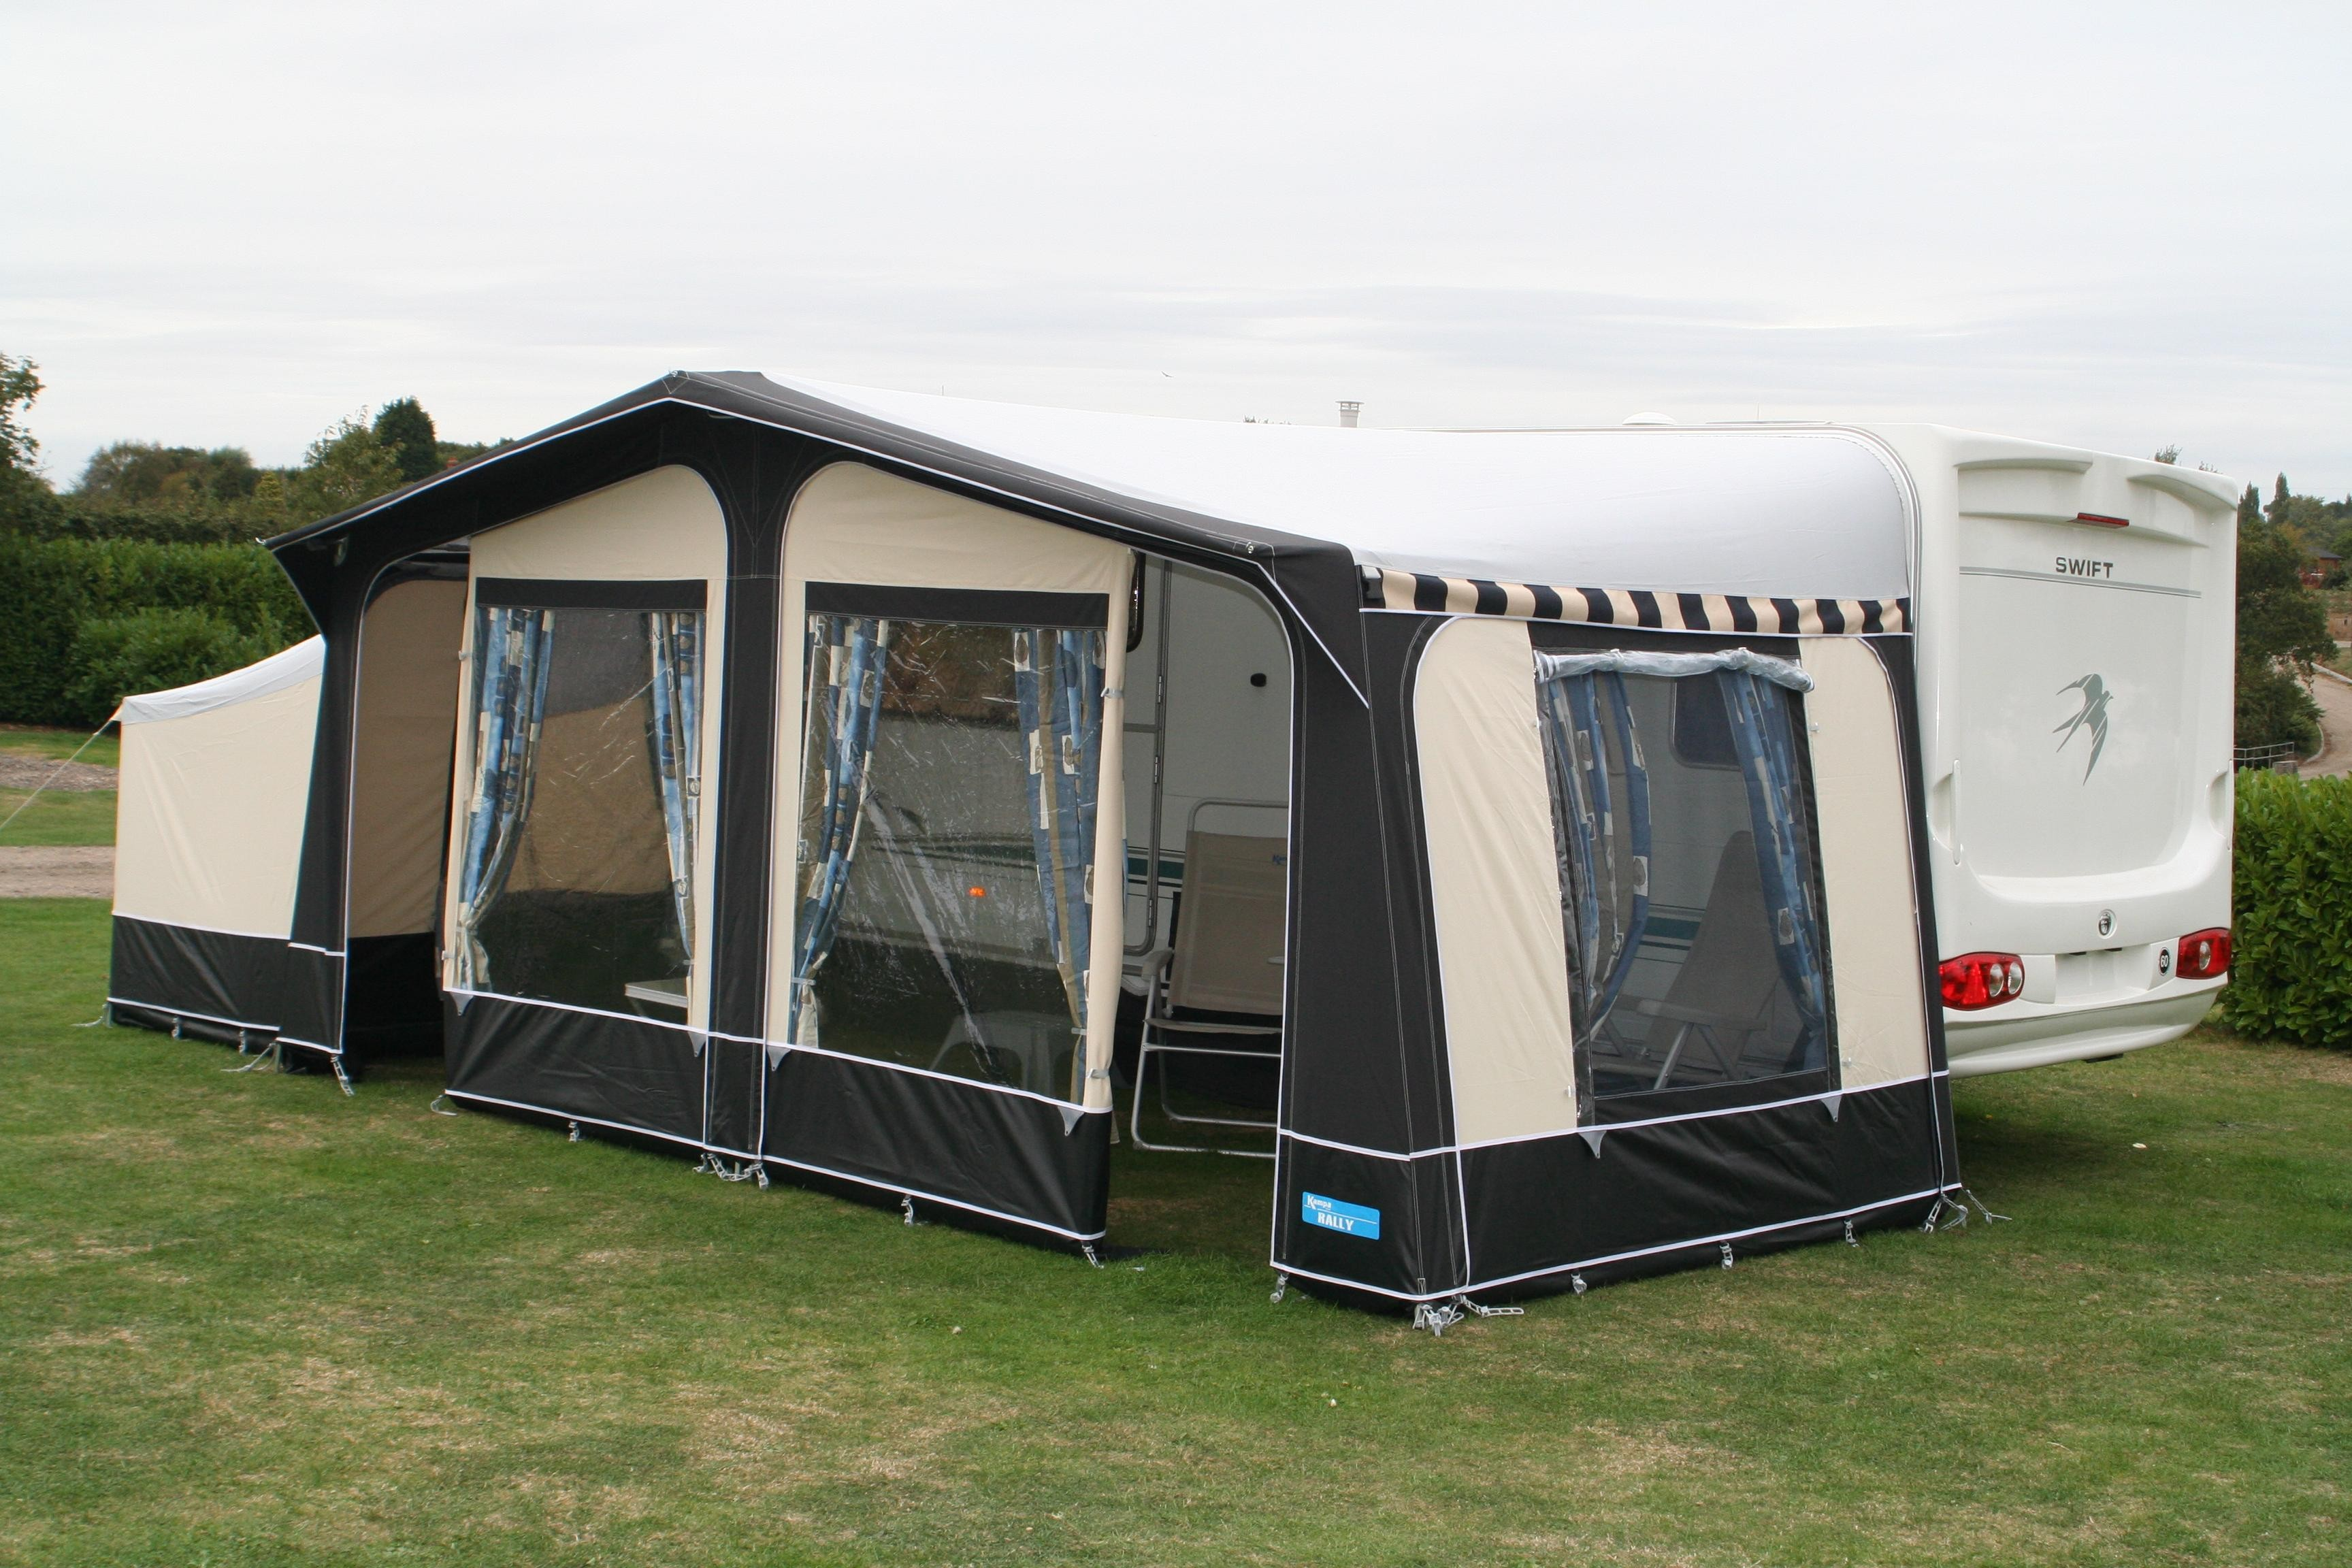 en product category archieven trento camper awnings caravancampervan air awning eurotrail tent caravantent caravan